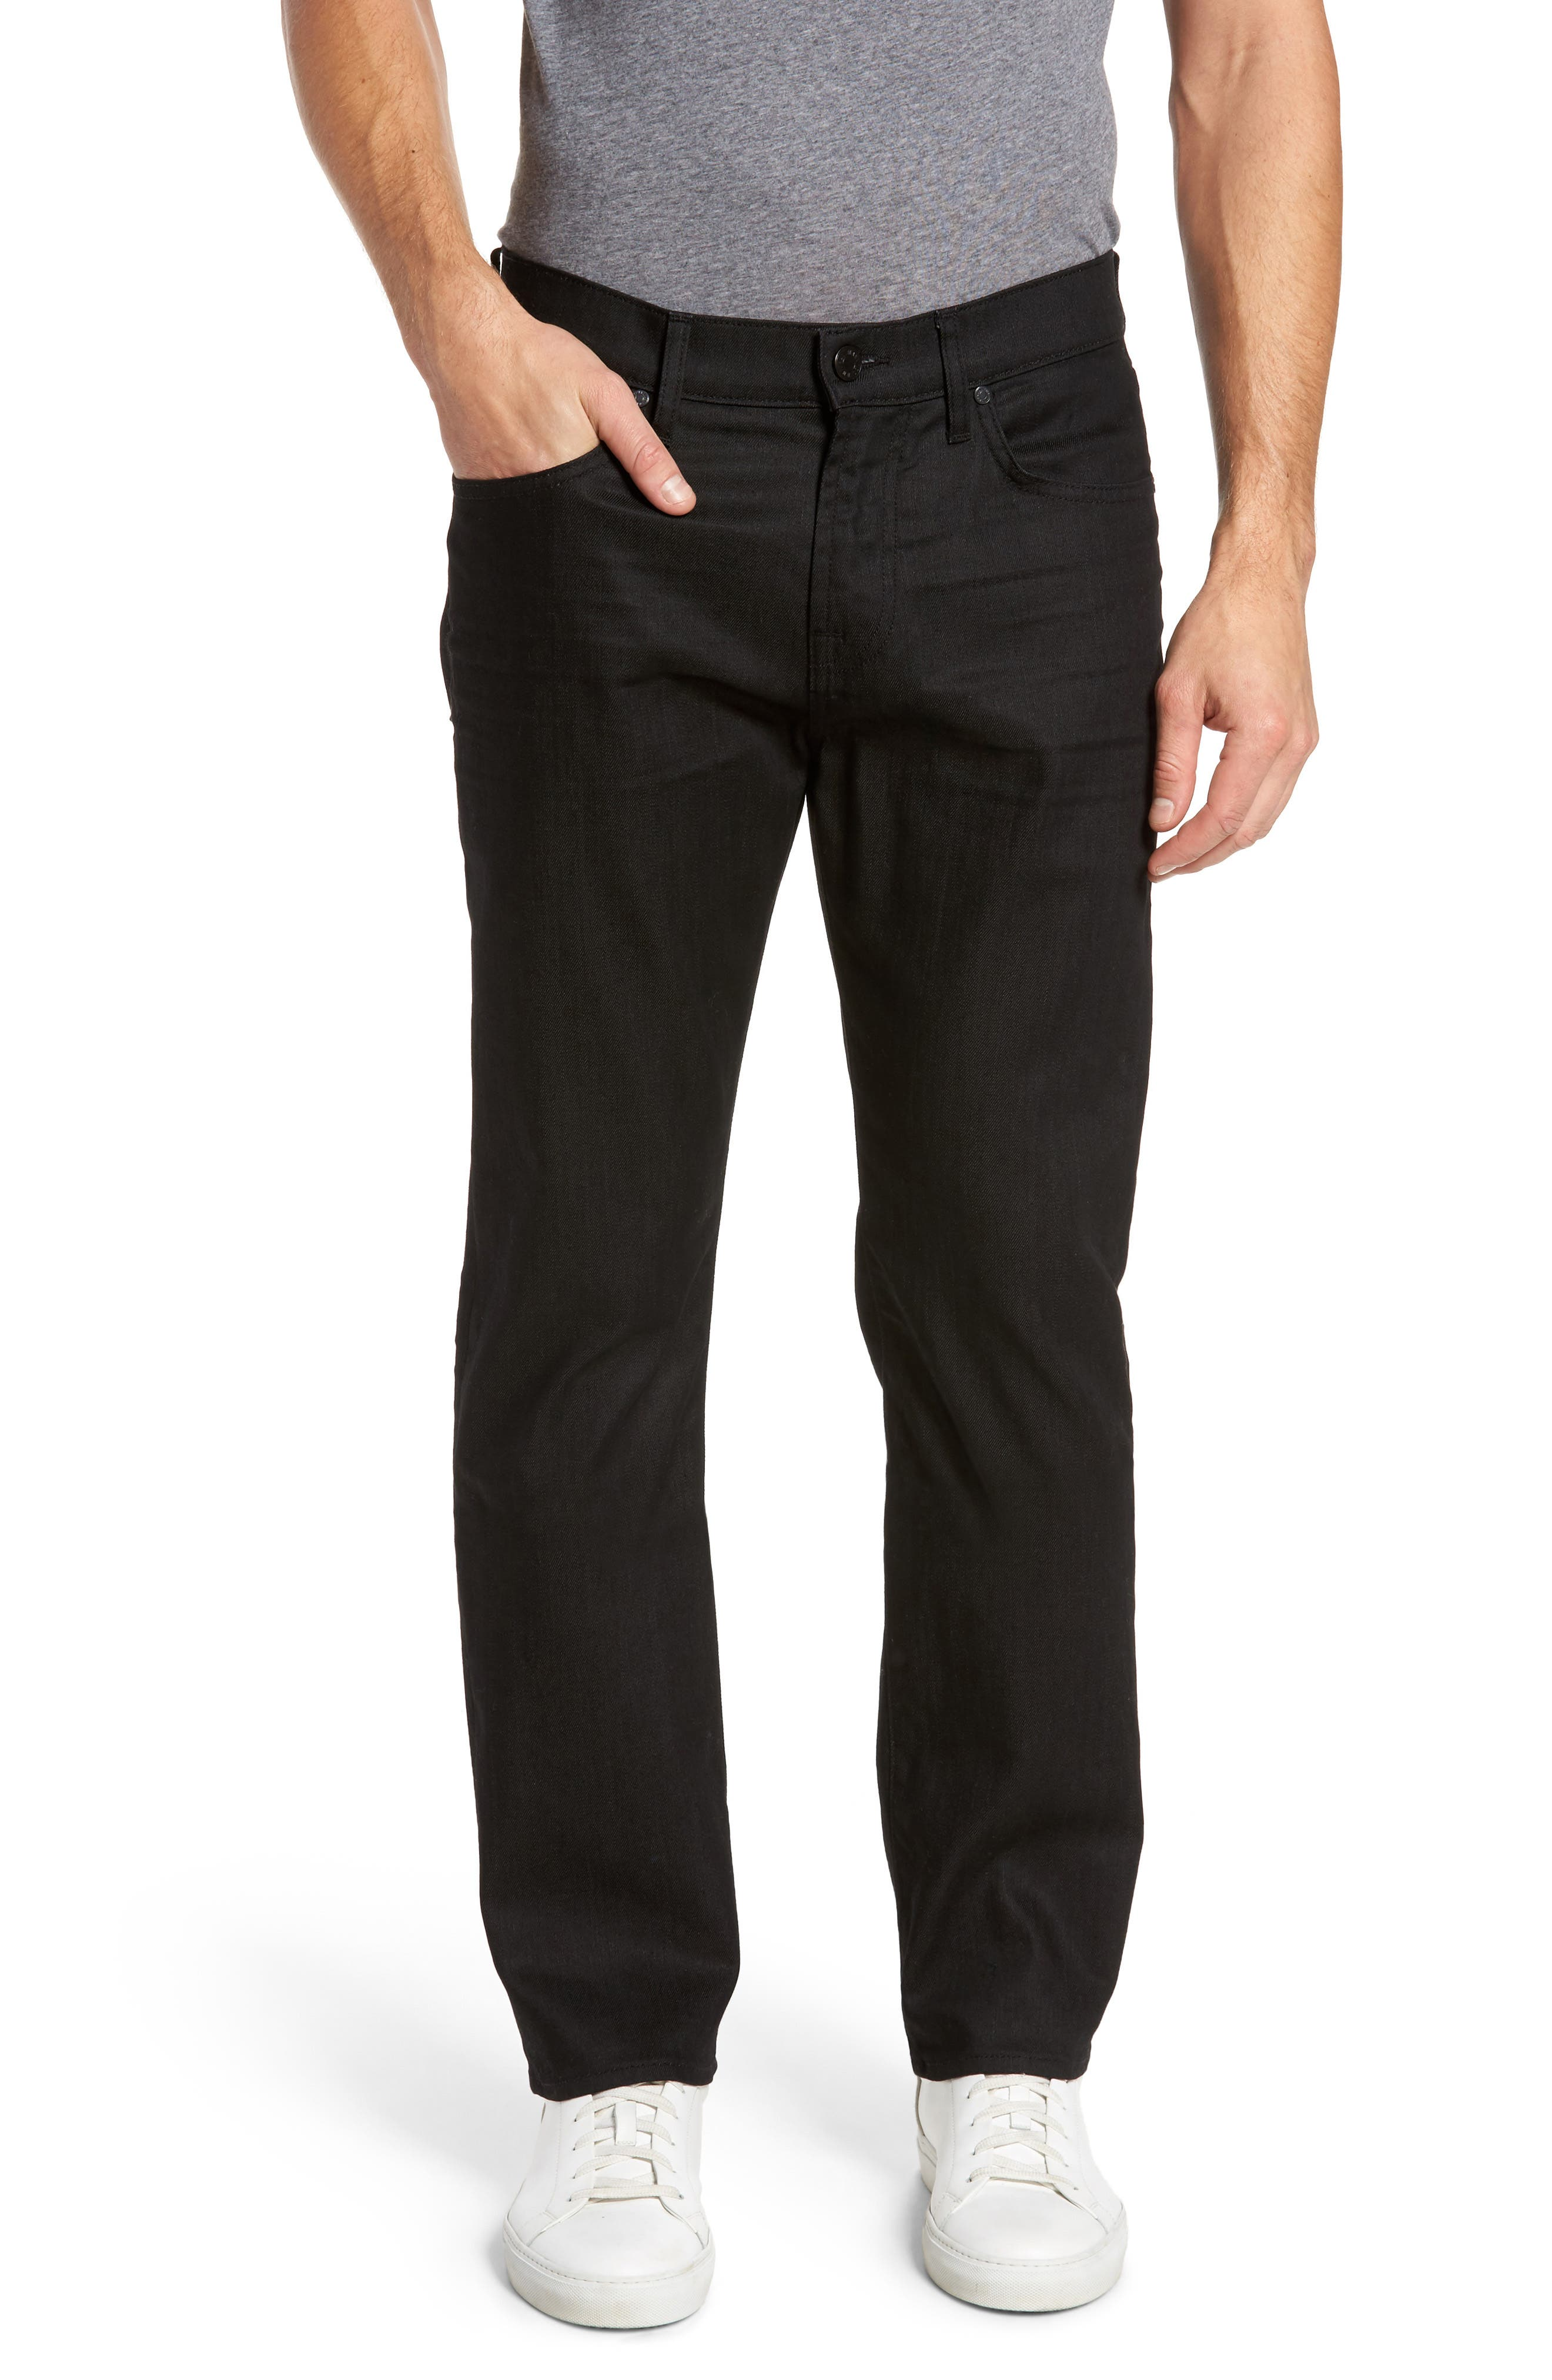 The Straight Slim Straight Fit Jeans,                             Main thumbnail 1, color,                             Soiree Bla